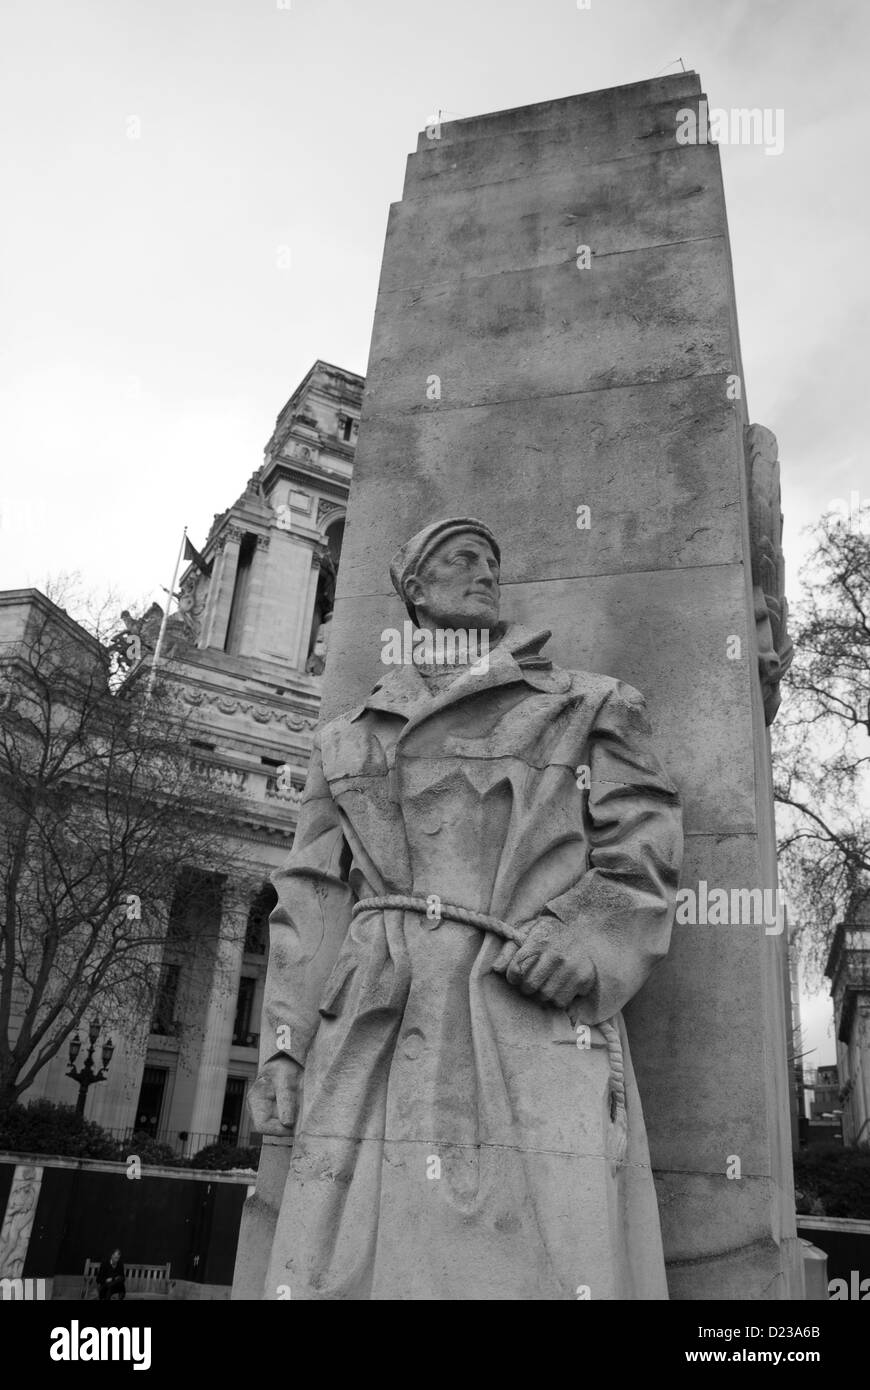 Merchant Navy statue at Trinity Square memorial in City of London - Stock Image